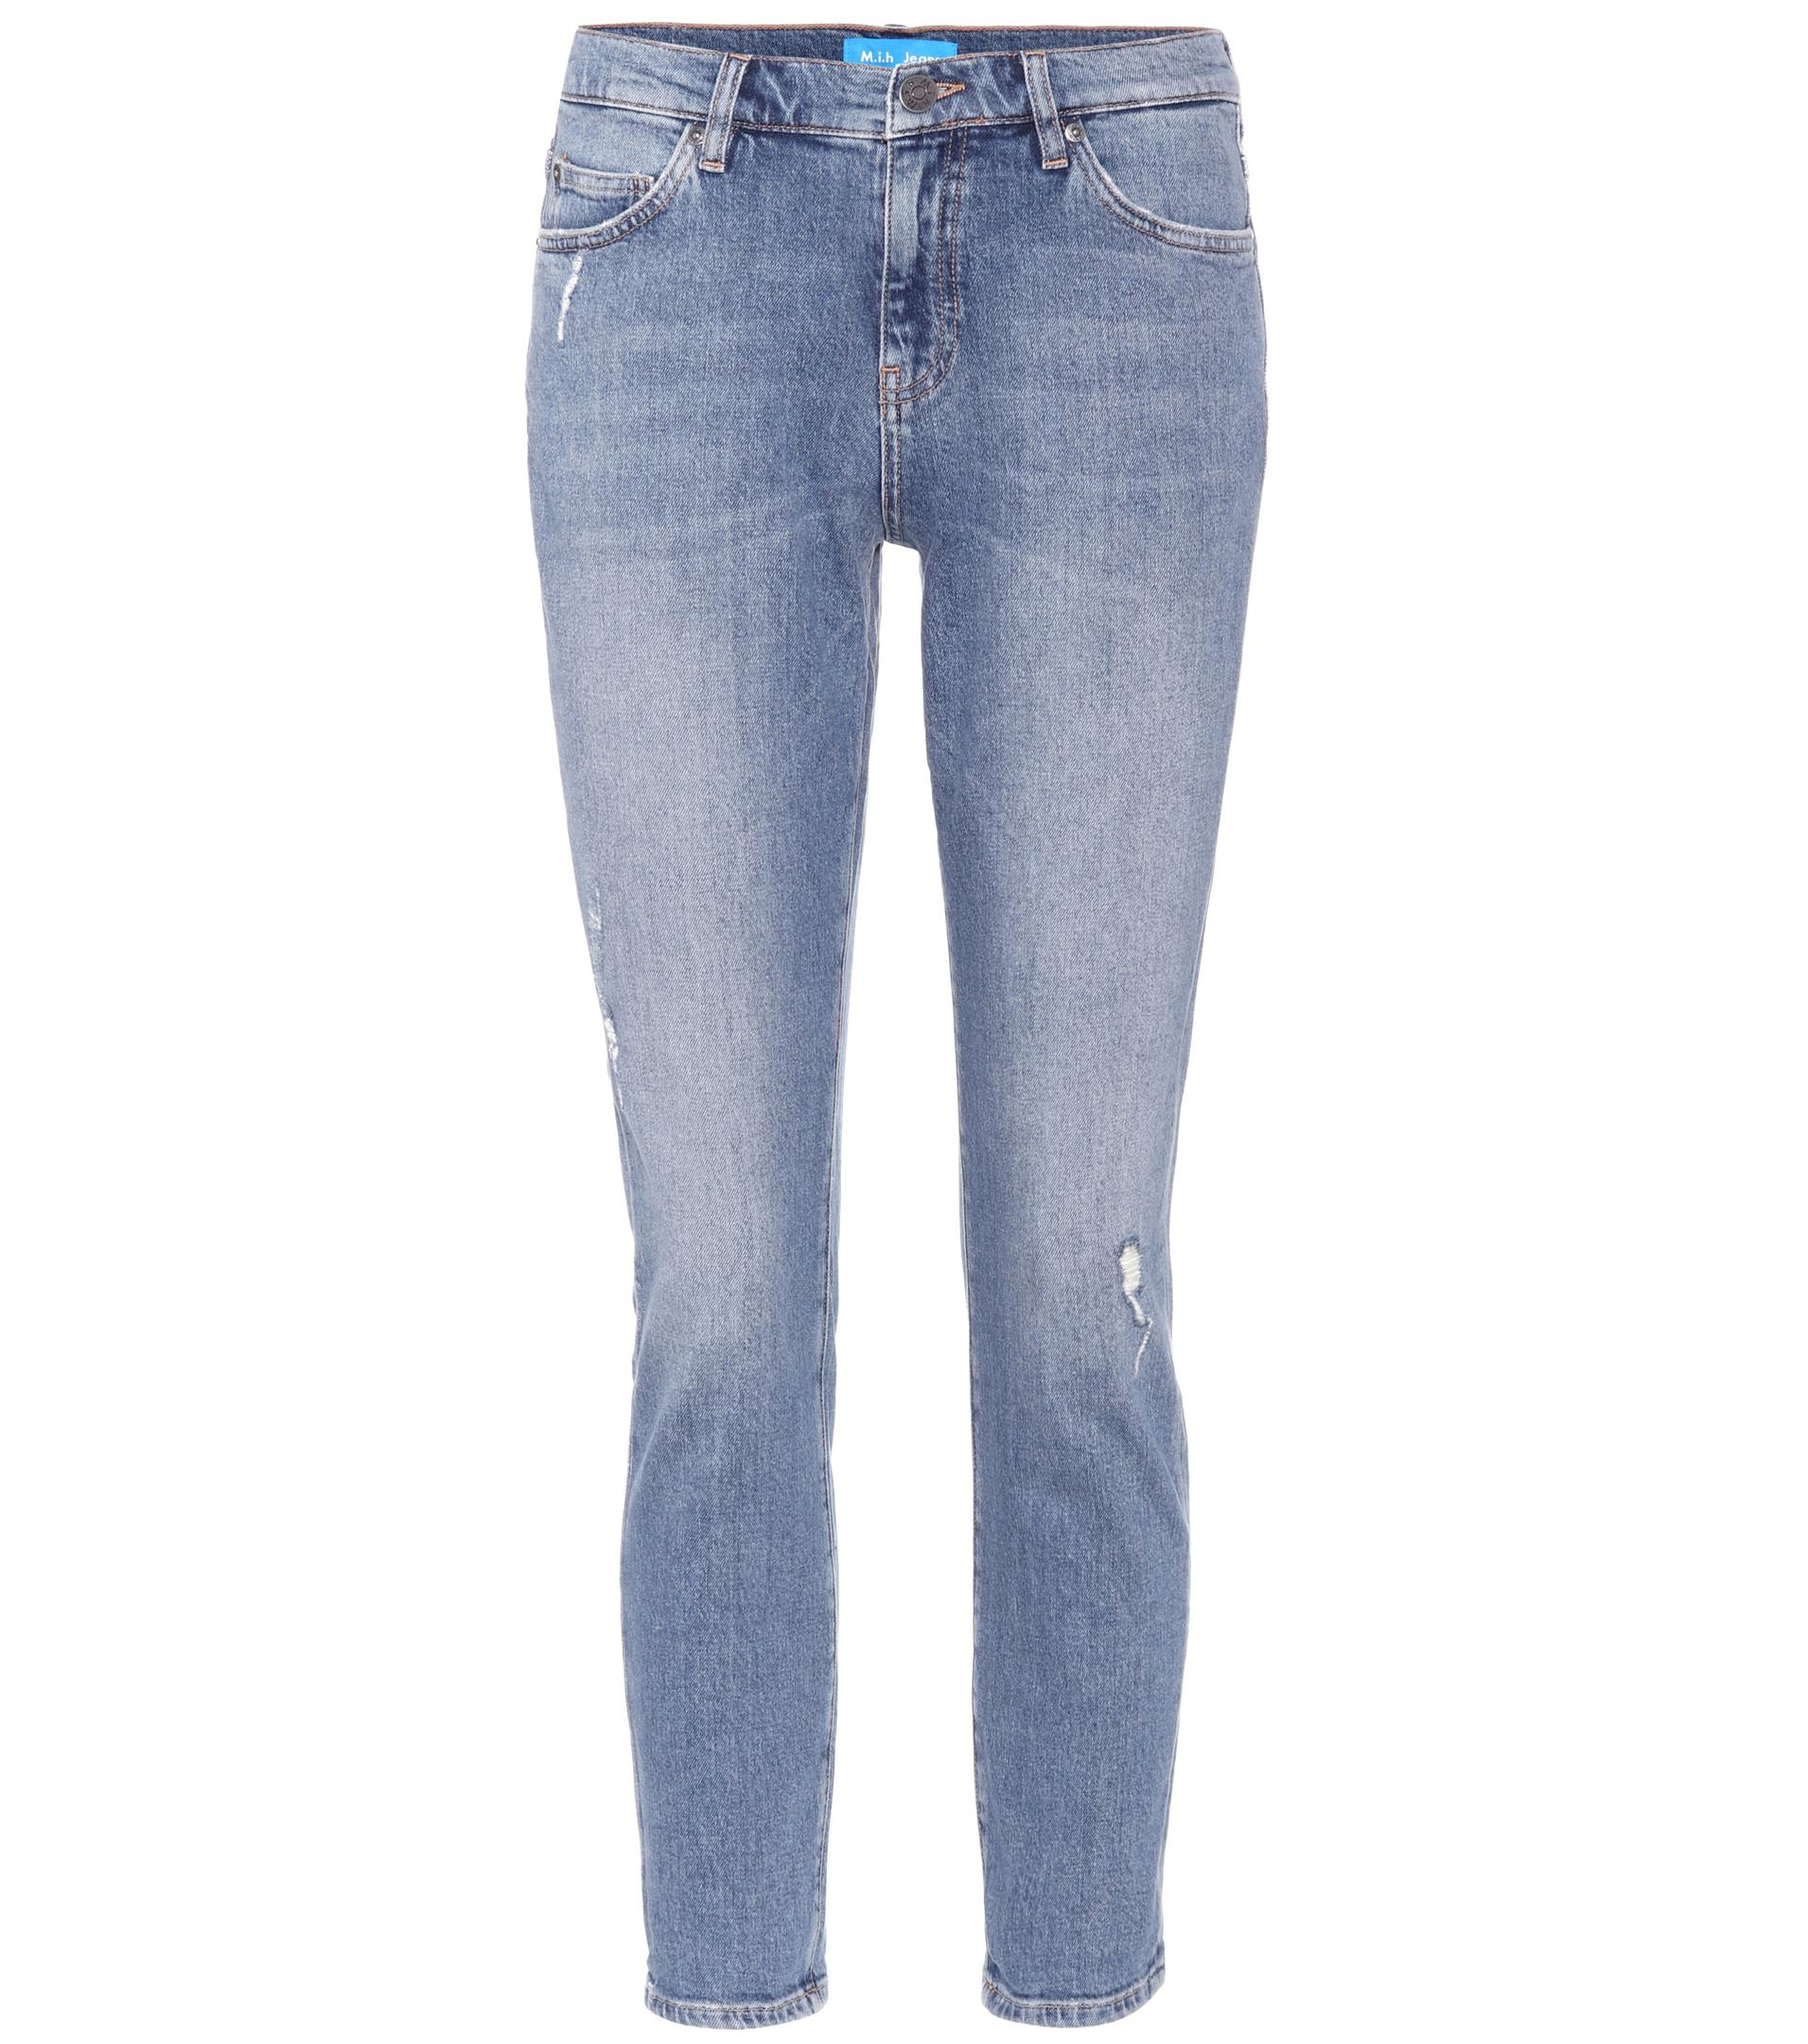 New Cheap Online Free Shipping Sneakernews Cropped jeans with appliqué Mih Jeans Clearance Low Price Fee Shipping Cheap Huge Surprise Manchester Great Sale Cheap Price 3qpiEOIxW